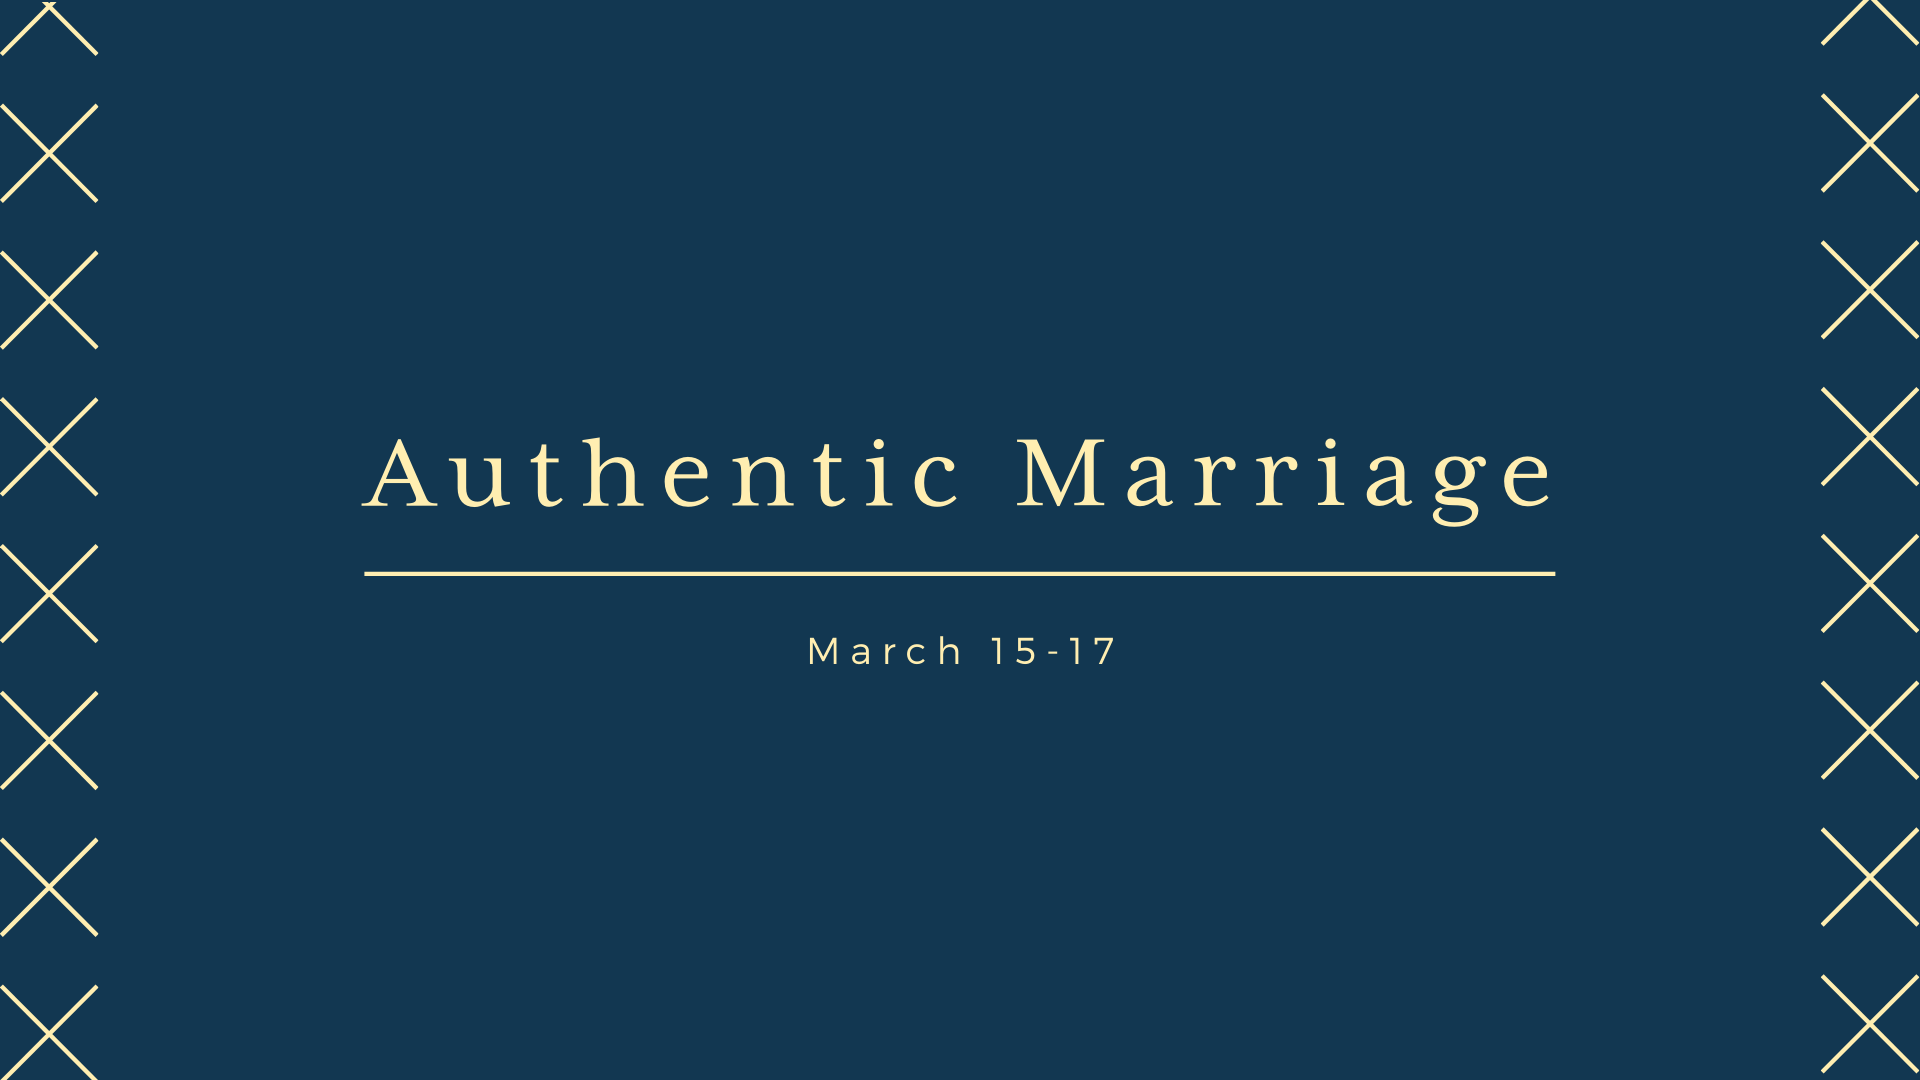 Copy of AUTHENTIC MARRIAGE (2).png